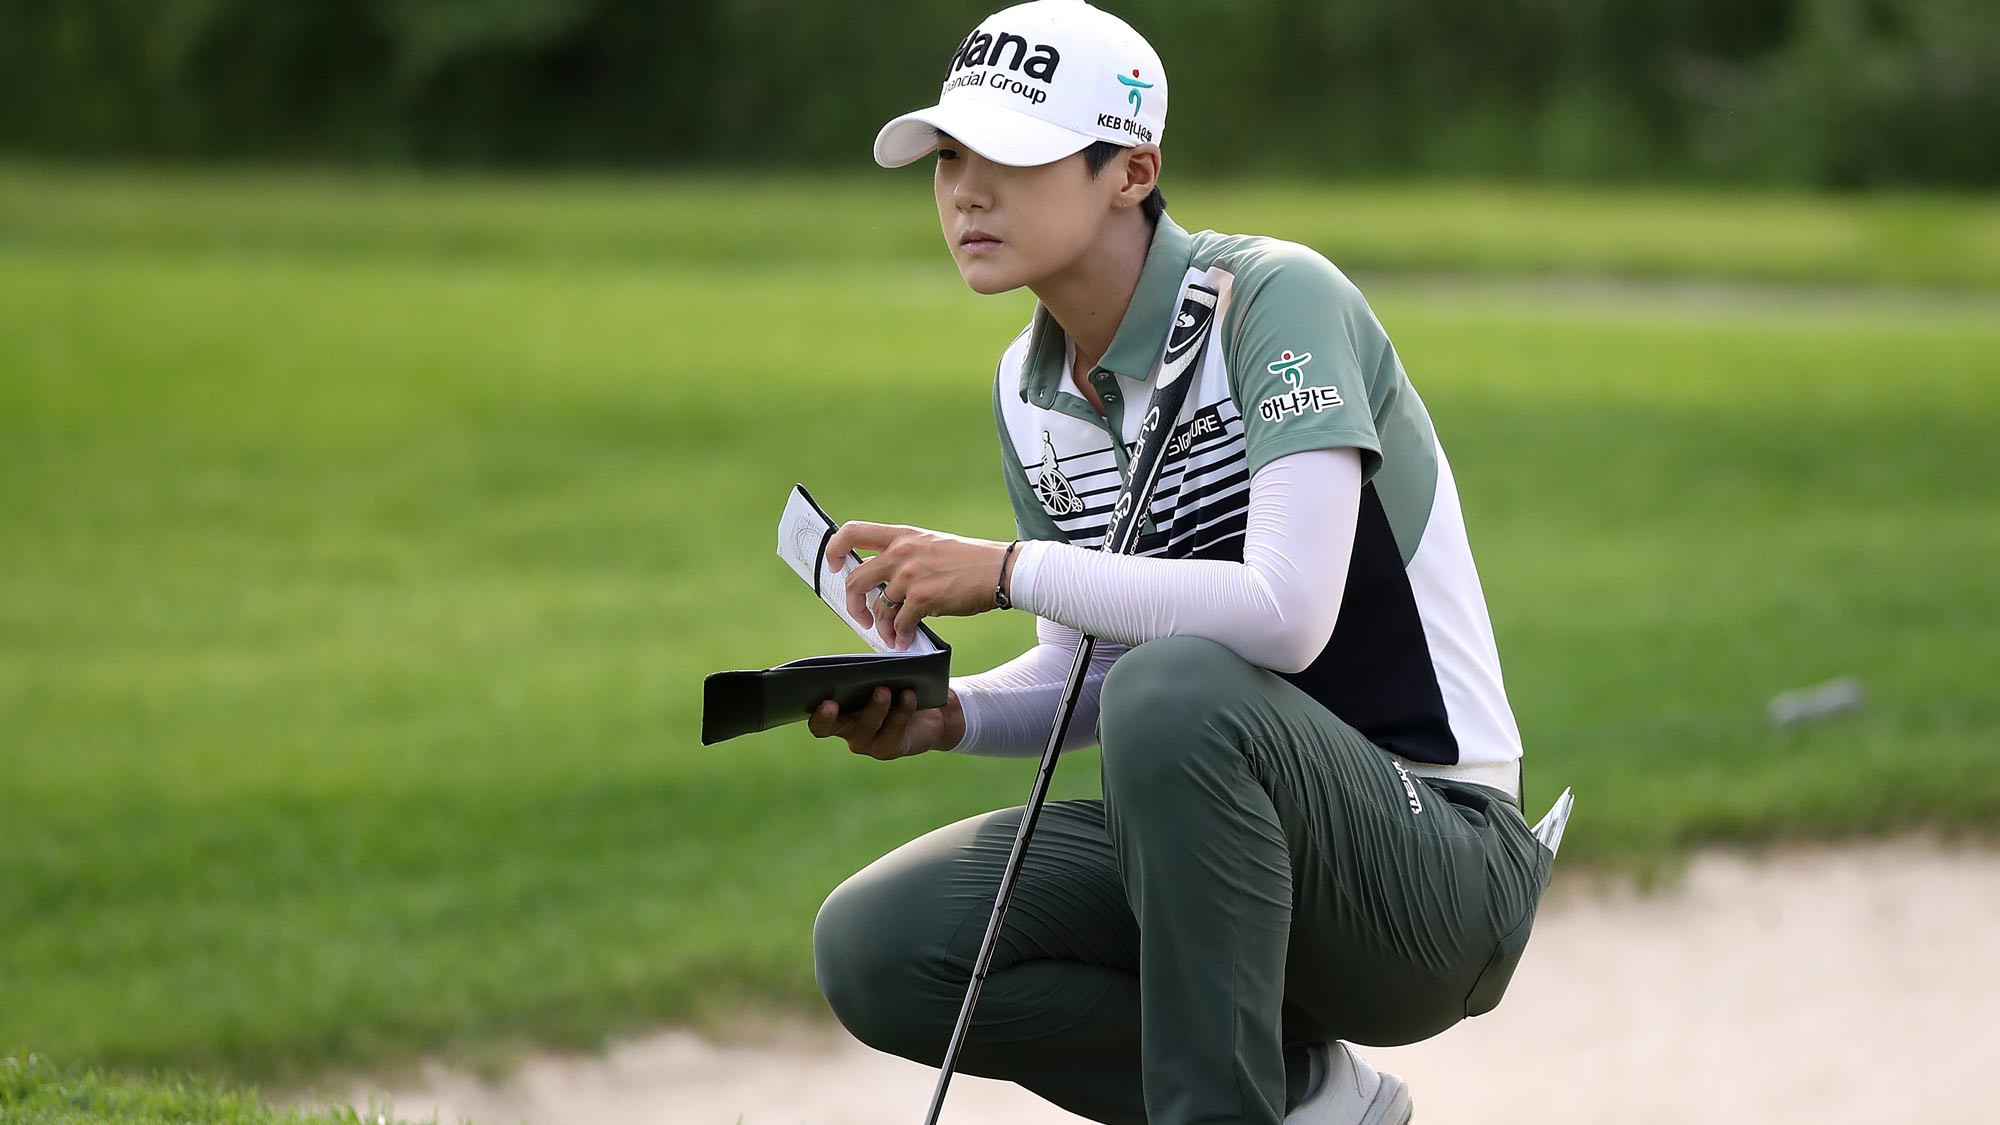 Six-under 66 sees Sung Hyun Park top leaderboard at Women's PGA Championship as injured Beck cards 68